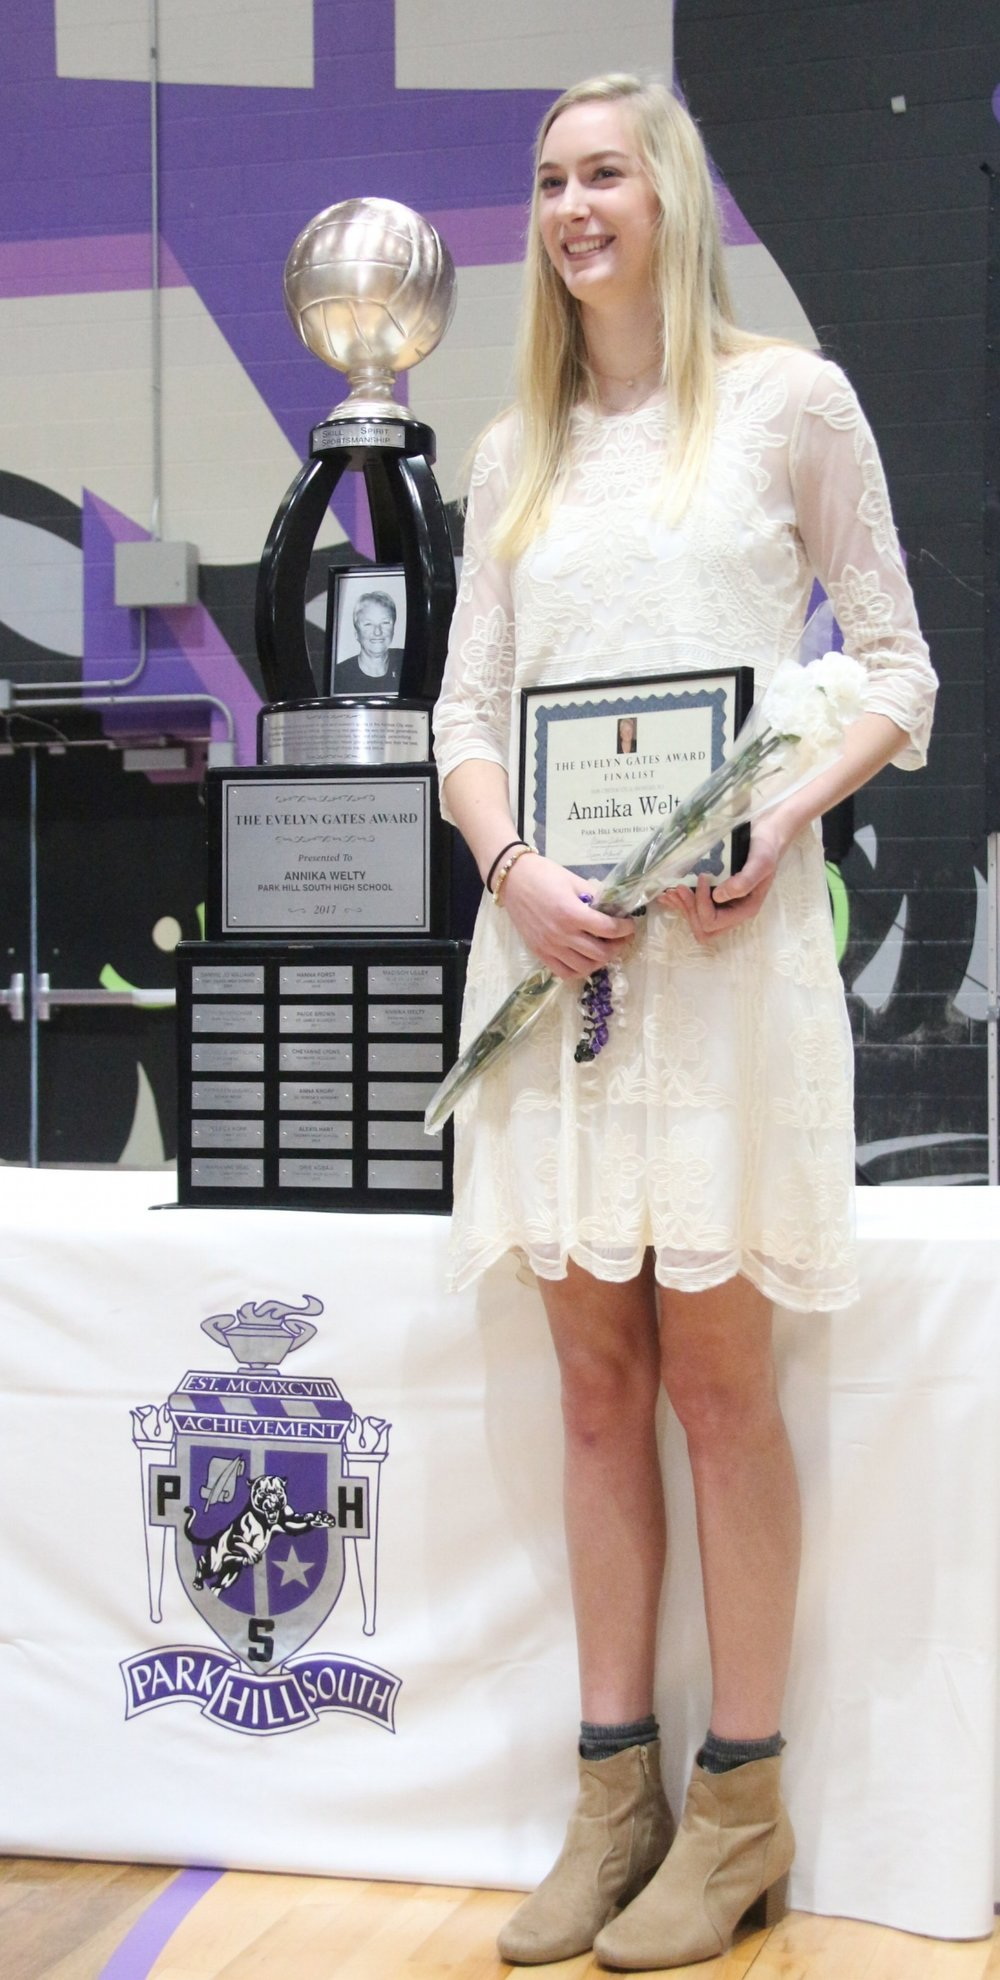 ROSS MARTIN/Citizen photo Park Hill South senior Annika Welty was awarded the Evelyn Gates Award, given to the top high school volleyball player in the Kansas City metro area, at a ceremony held Thursday, Nov. 16 at Park Hill South High School in Riverside, Mo.